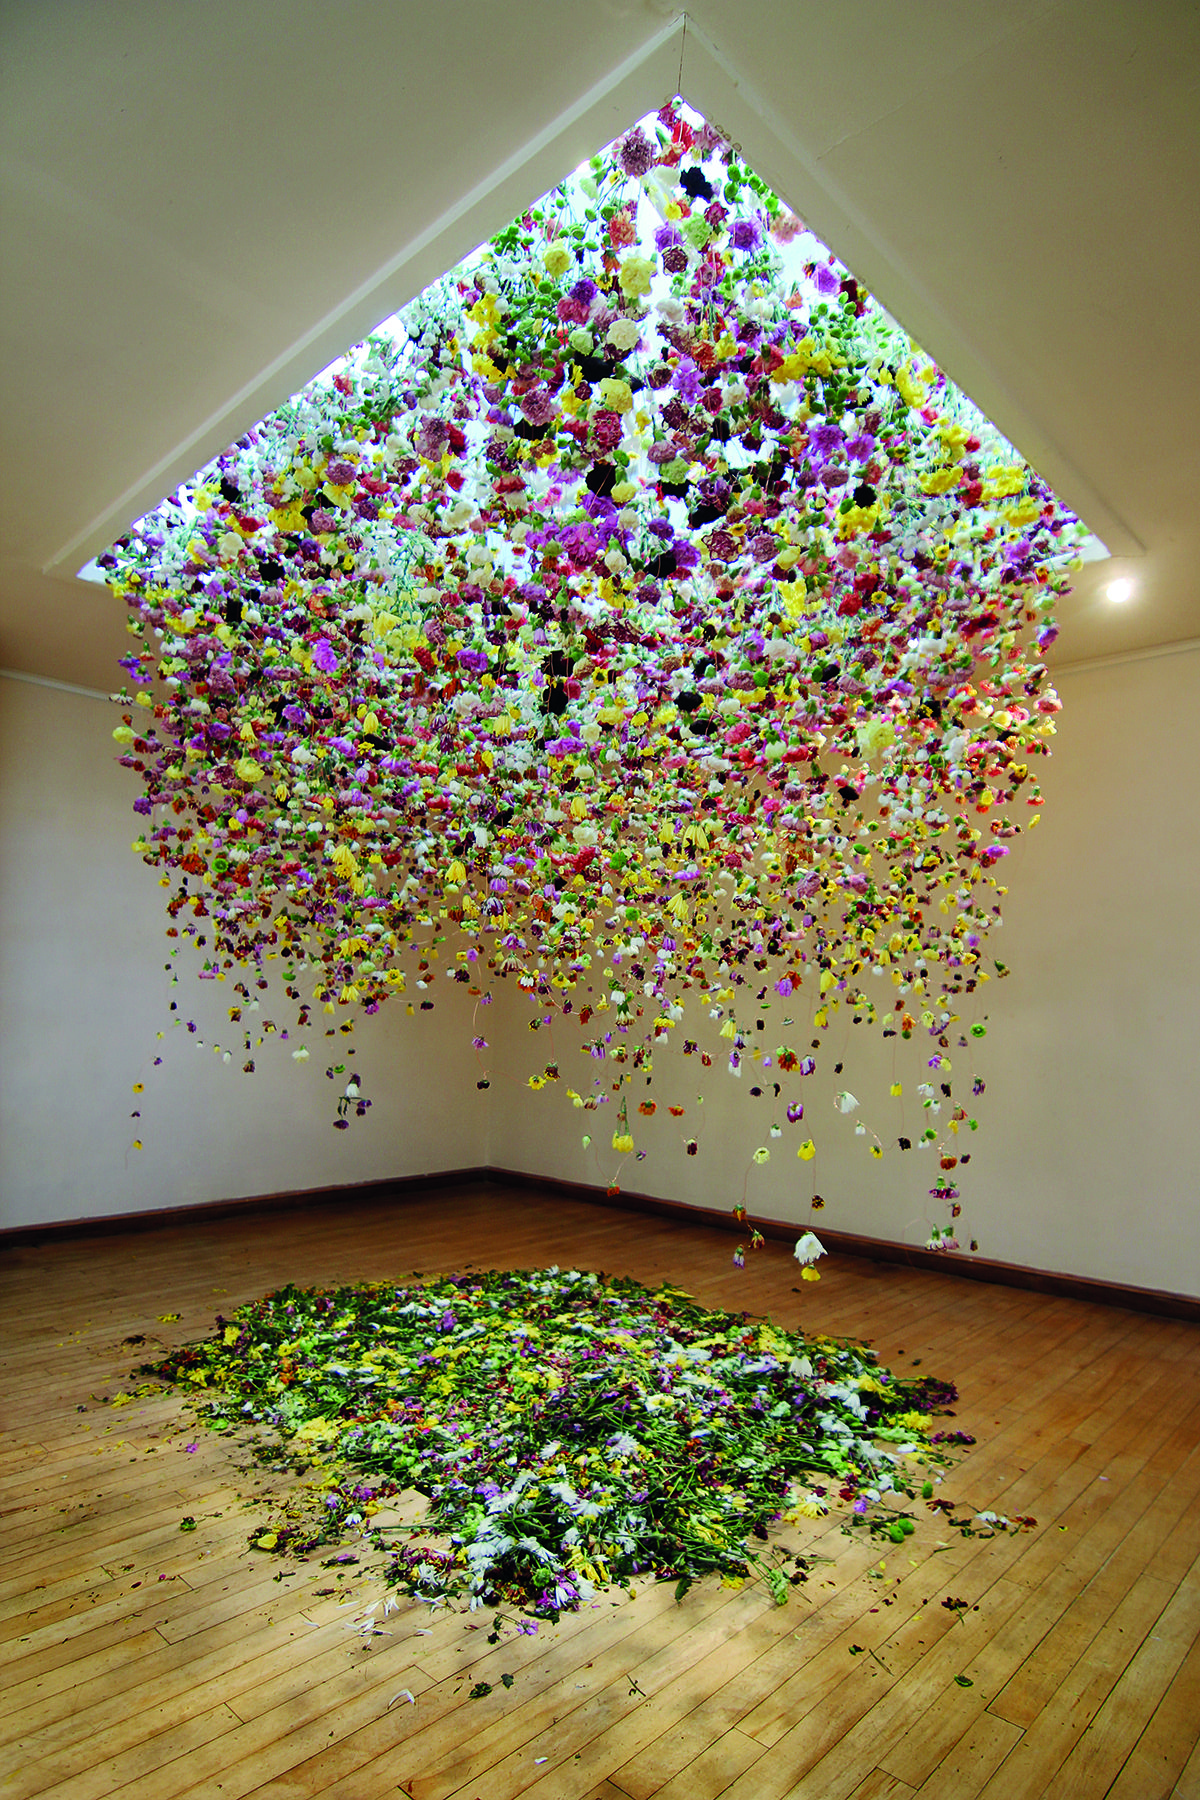 Interview: Floral Installations Transform Gallery Spaces Into Immersive Indoor Gardens